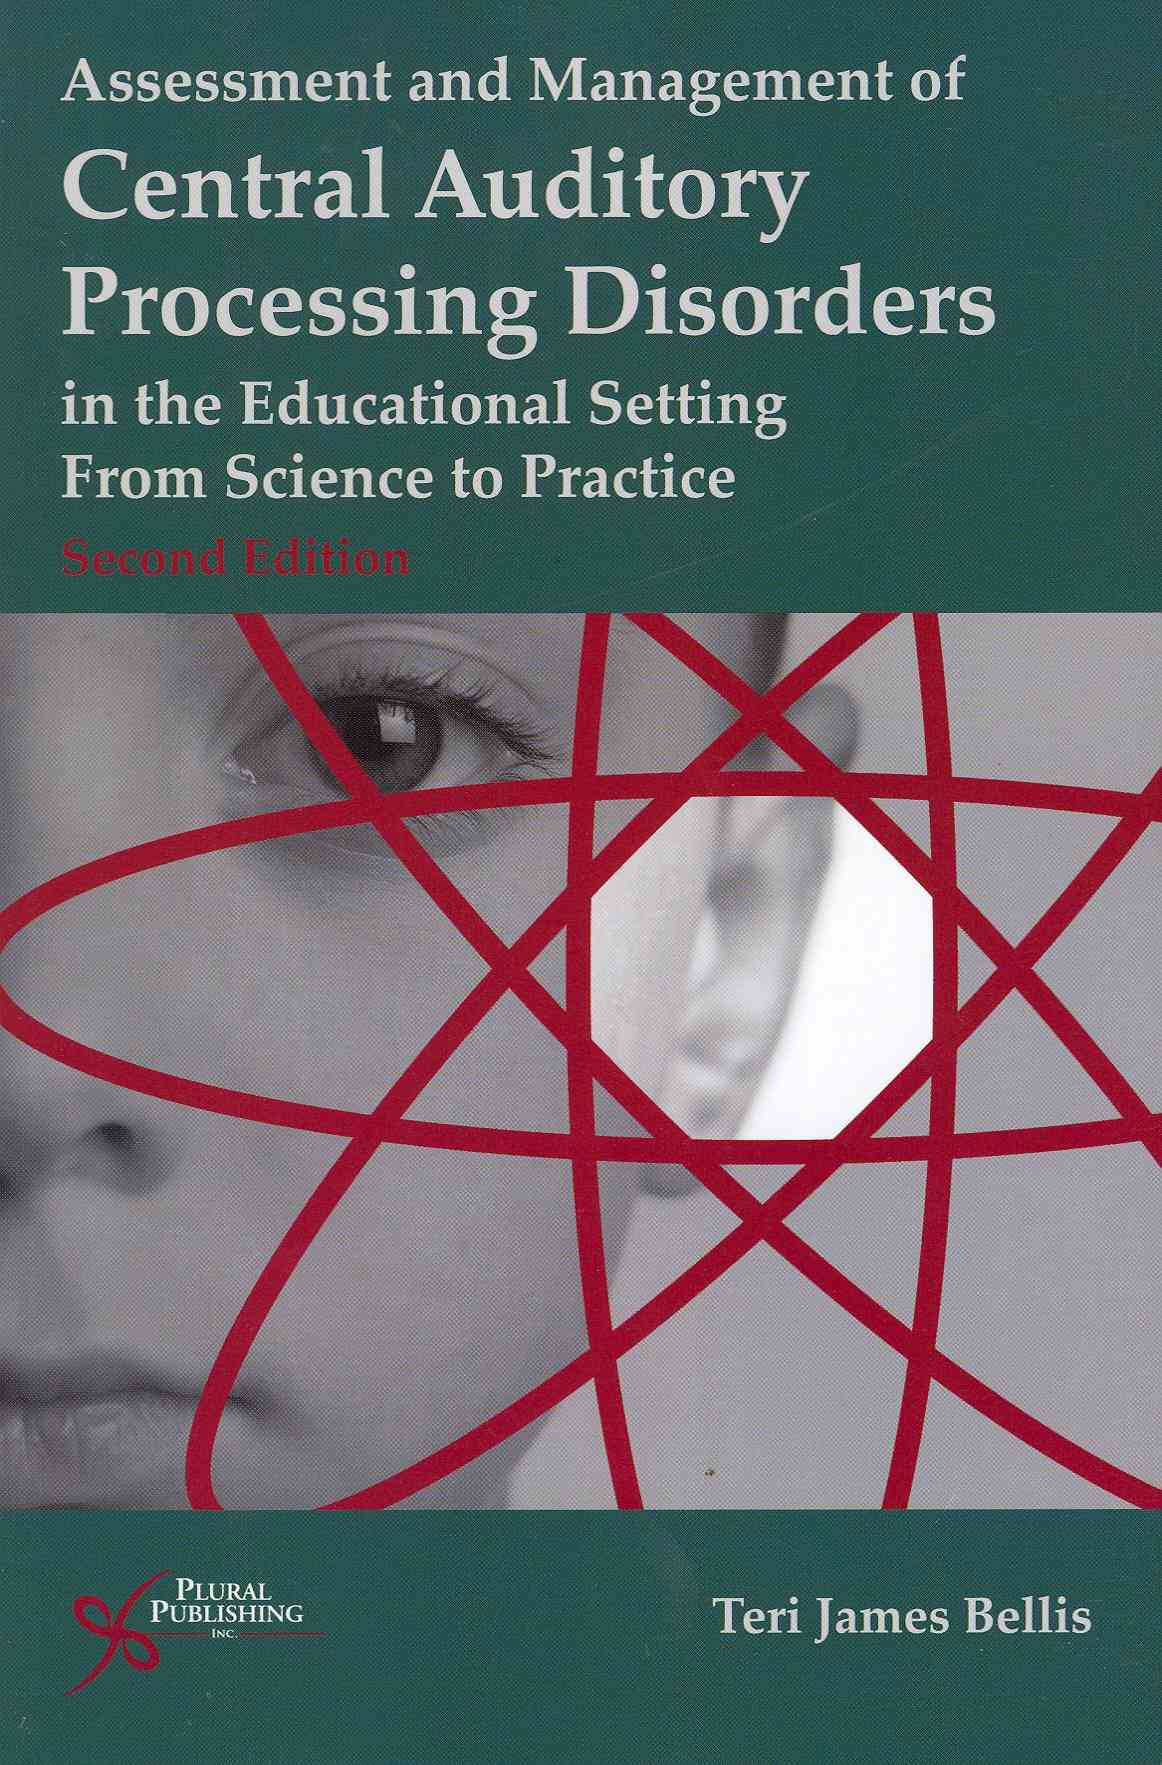 Assessment and Management of Central Auditory Processing Disorders in the Educational Setting By Bellis, Teri James, Ph.D.